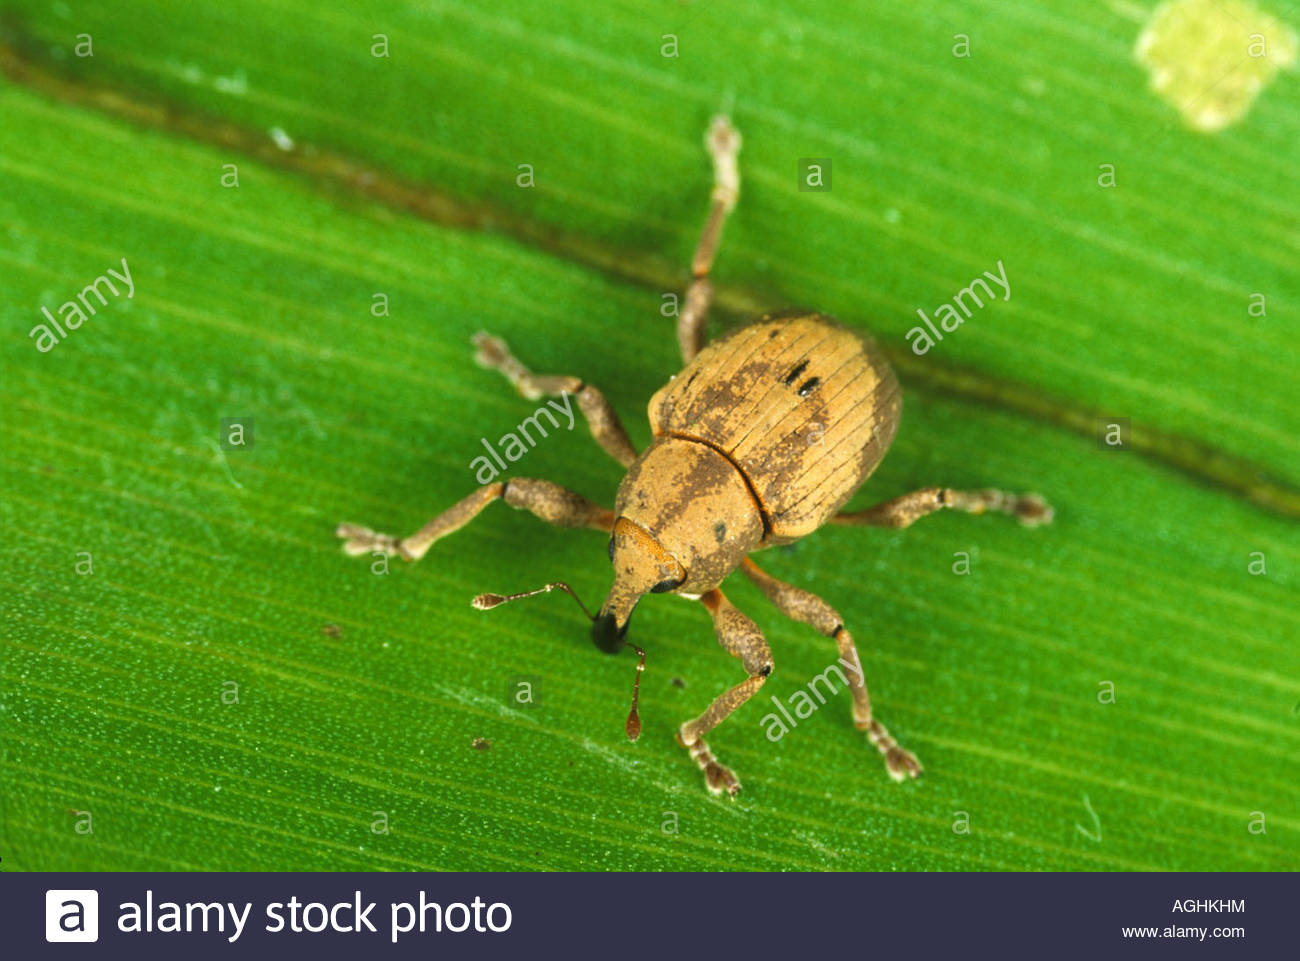 Biological control weevil Neochetina bruchi used in the control of water hyacinth Thailand - Stock Image